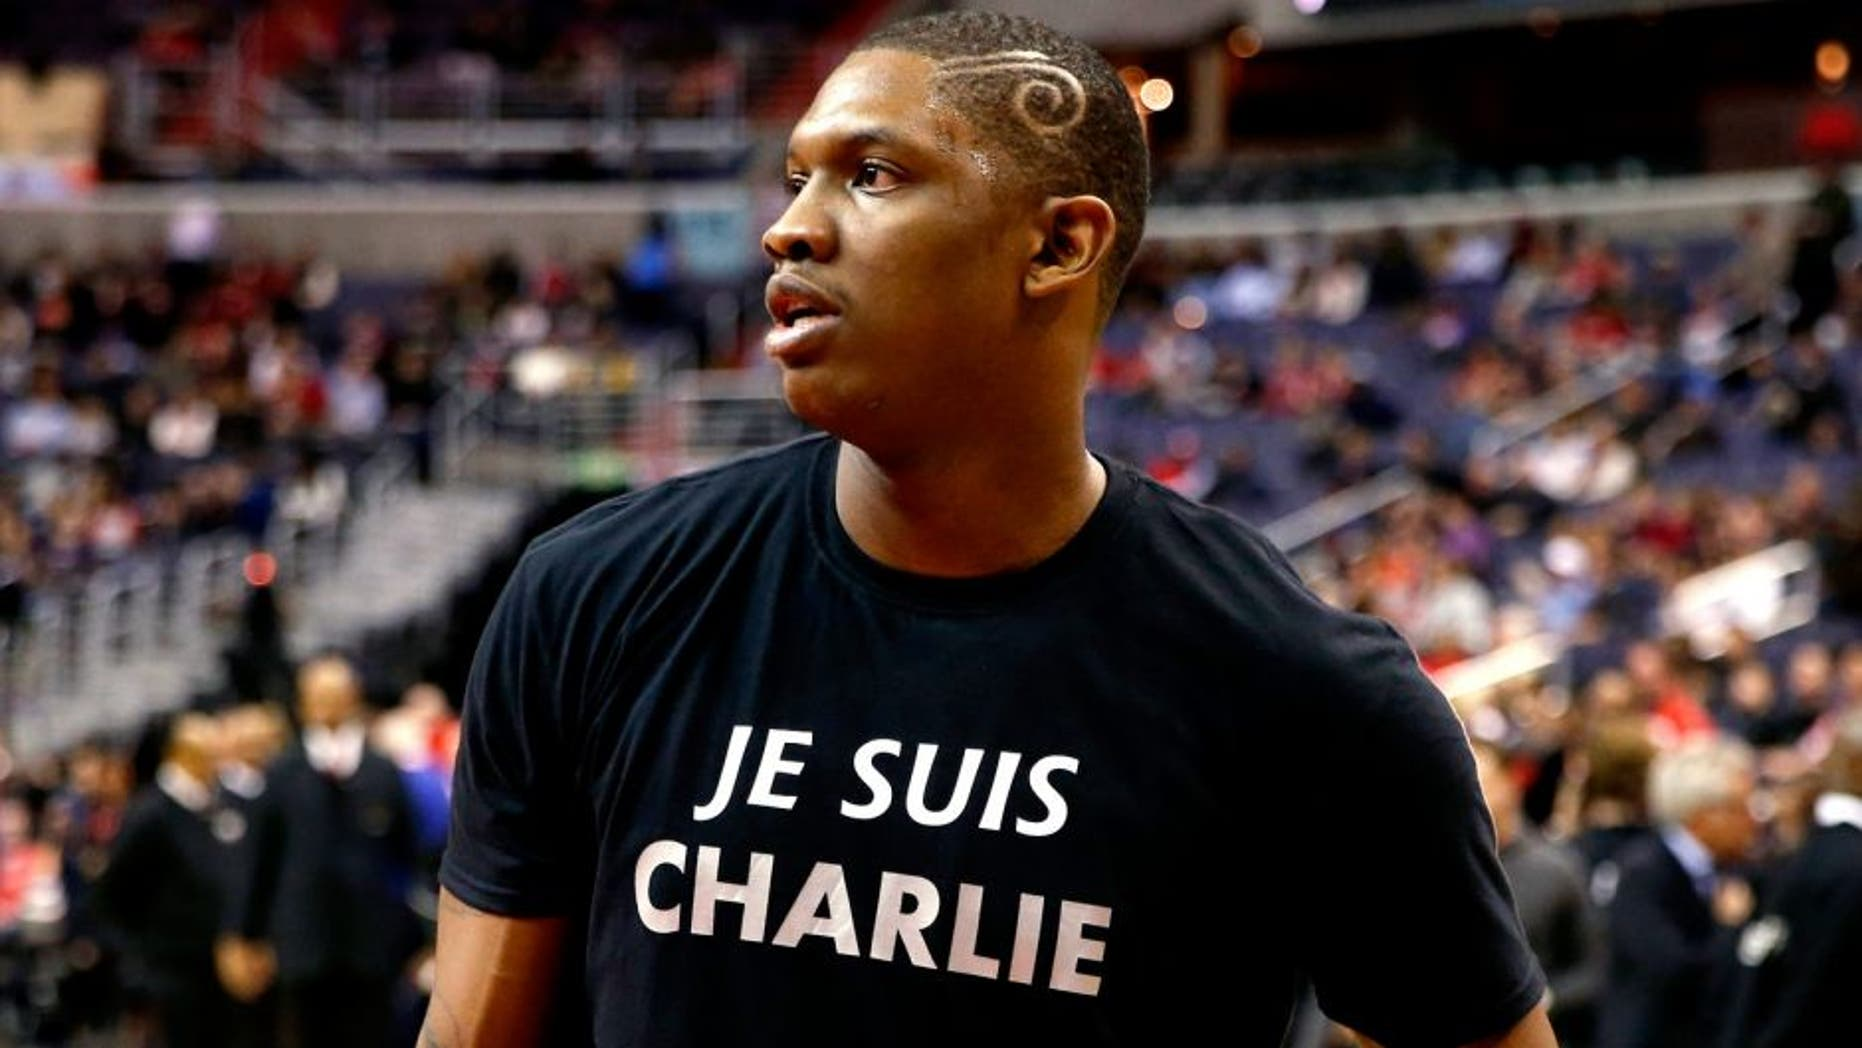 """Washington Wizards center Kevin Seraphin, from France, wears a """"Je Suis Charlie"""" T-shirt during warmups for an NBA basketball game against the Chicago Bulls, Friday, Jan. 9, 2015, in Washington. """"Je Suis Charlie"""" ó """"I Am Charlie"""" in English ó has become a worldwide slogan to show solidarity with Charlie Hebdo, a Paris weekly newspaper where 12 people were killed Wednesday in a terrorist attack. Seraphin was born in French Guiana and has represented France in international competitions. (AP Photo/Alex Brandon)"""